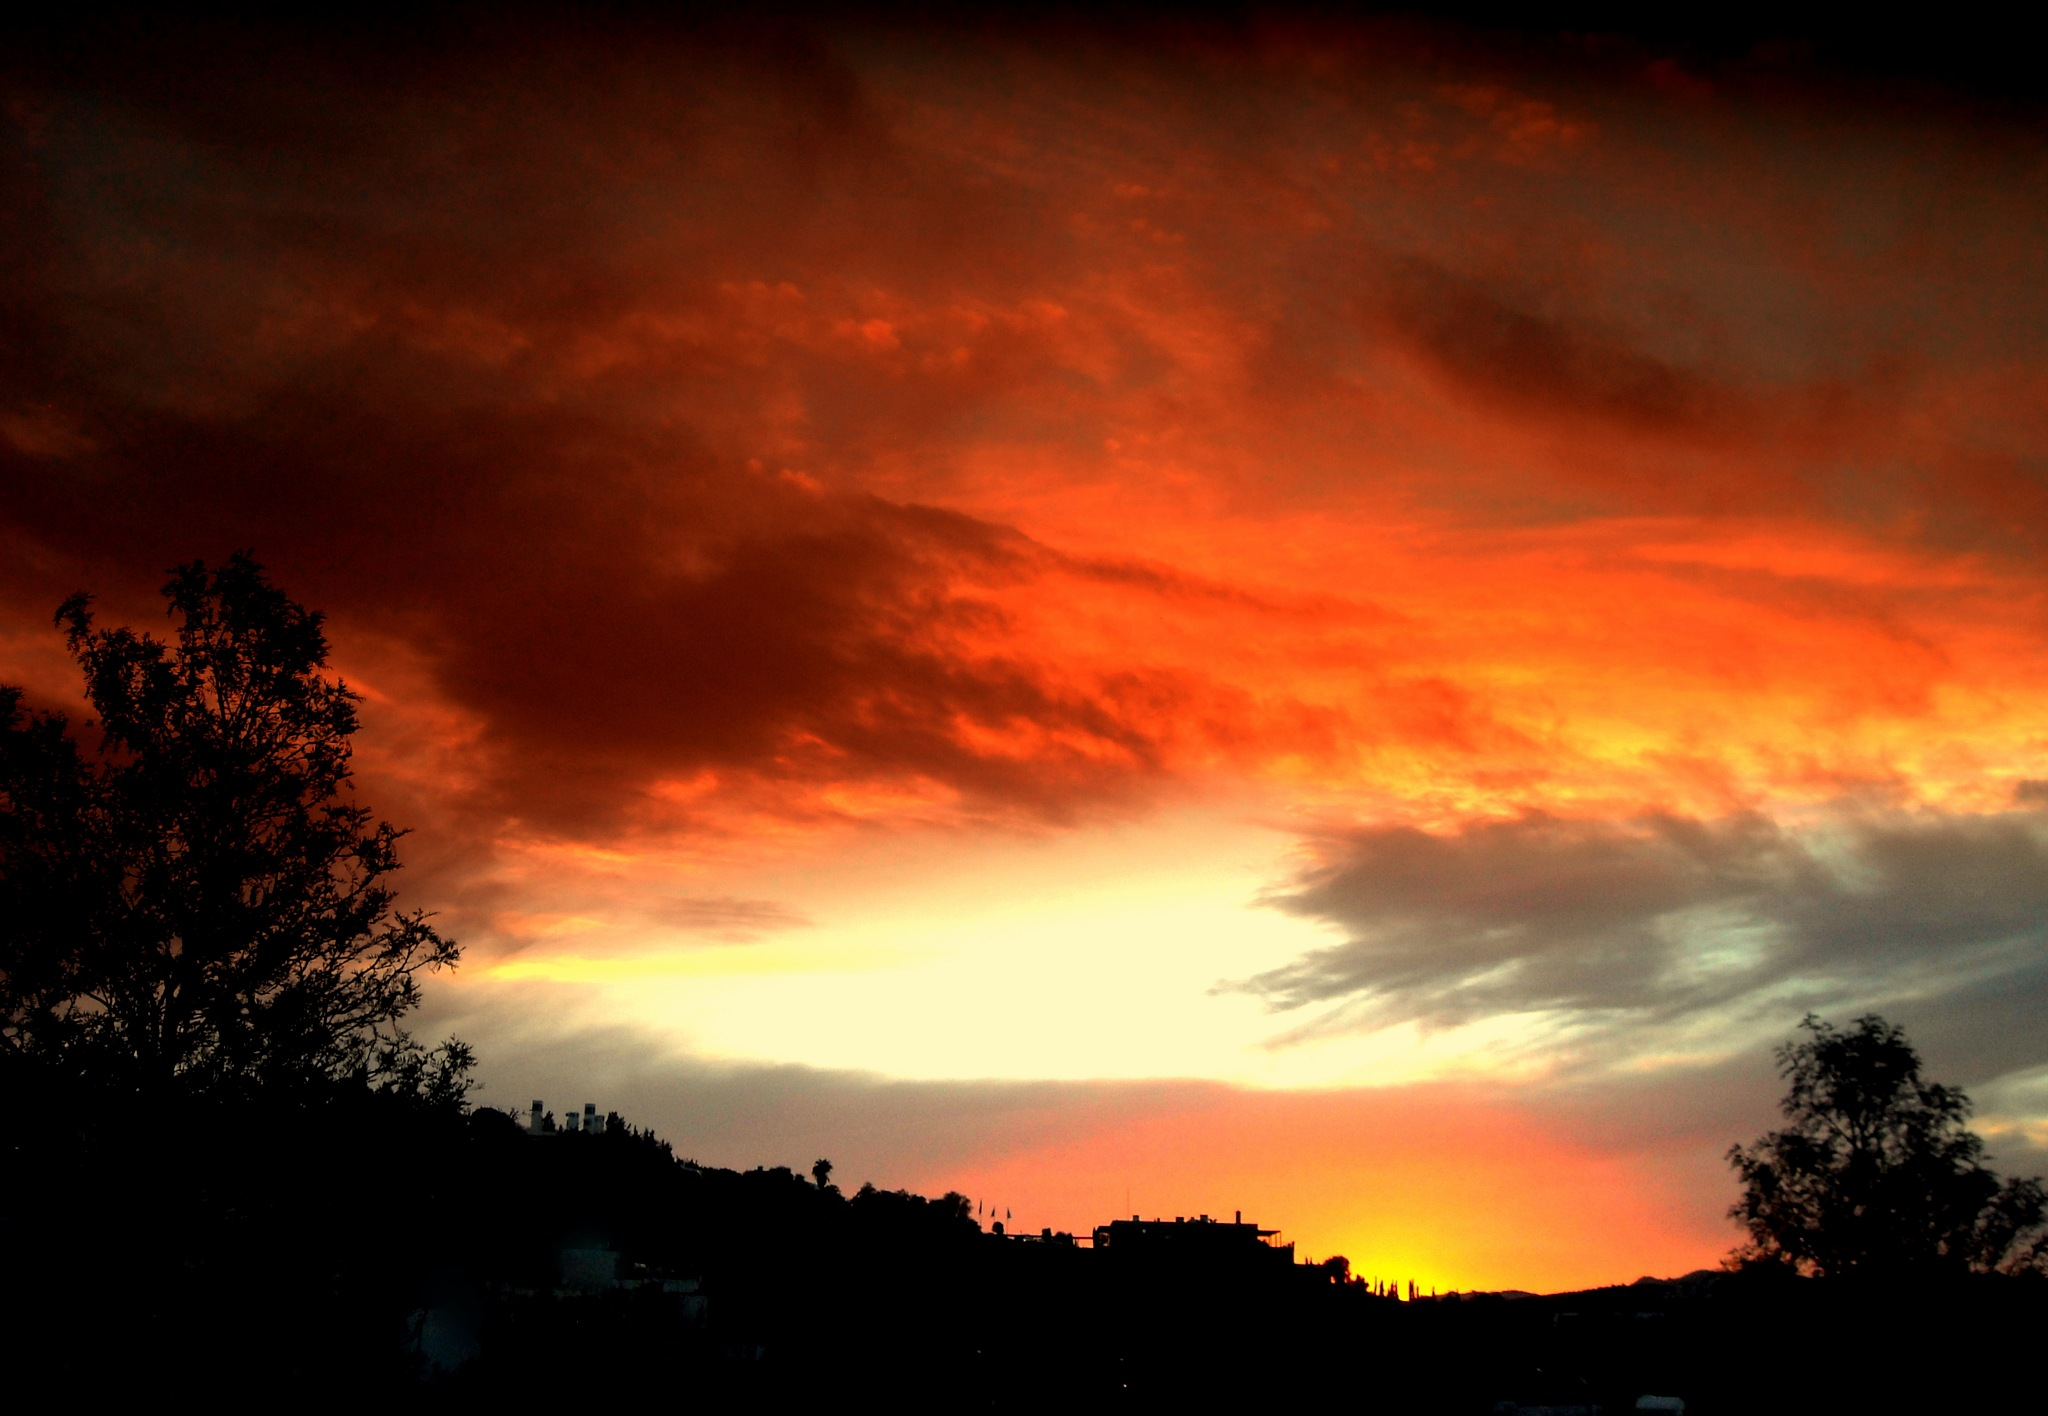 ANOTHER BEAUTIFUL SUNSET, BITEZ by Akin Saner